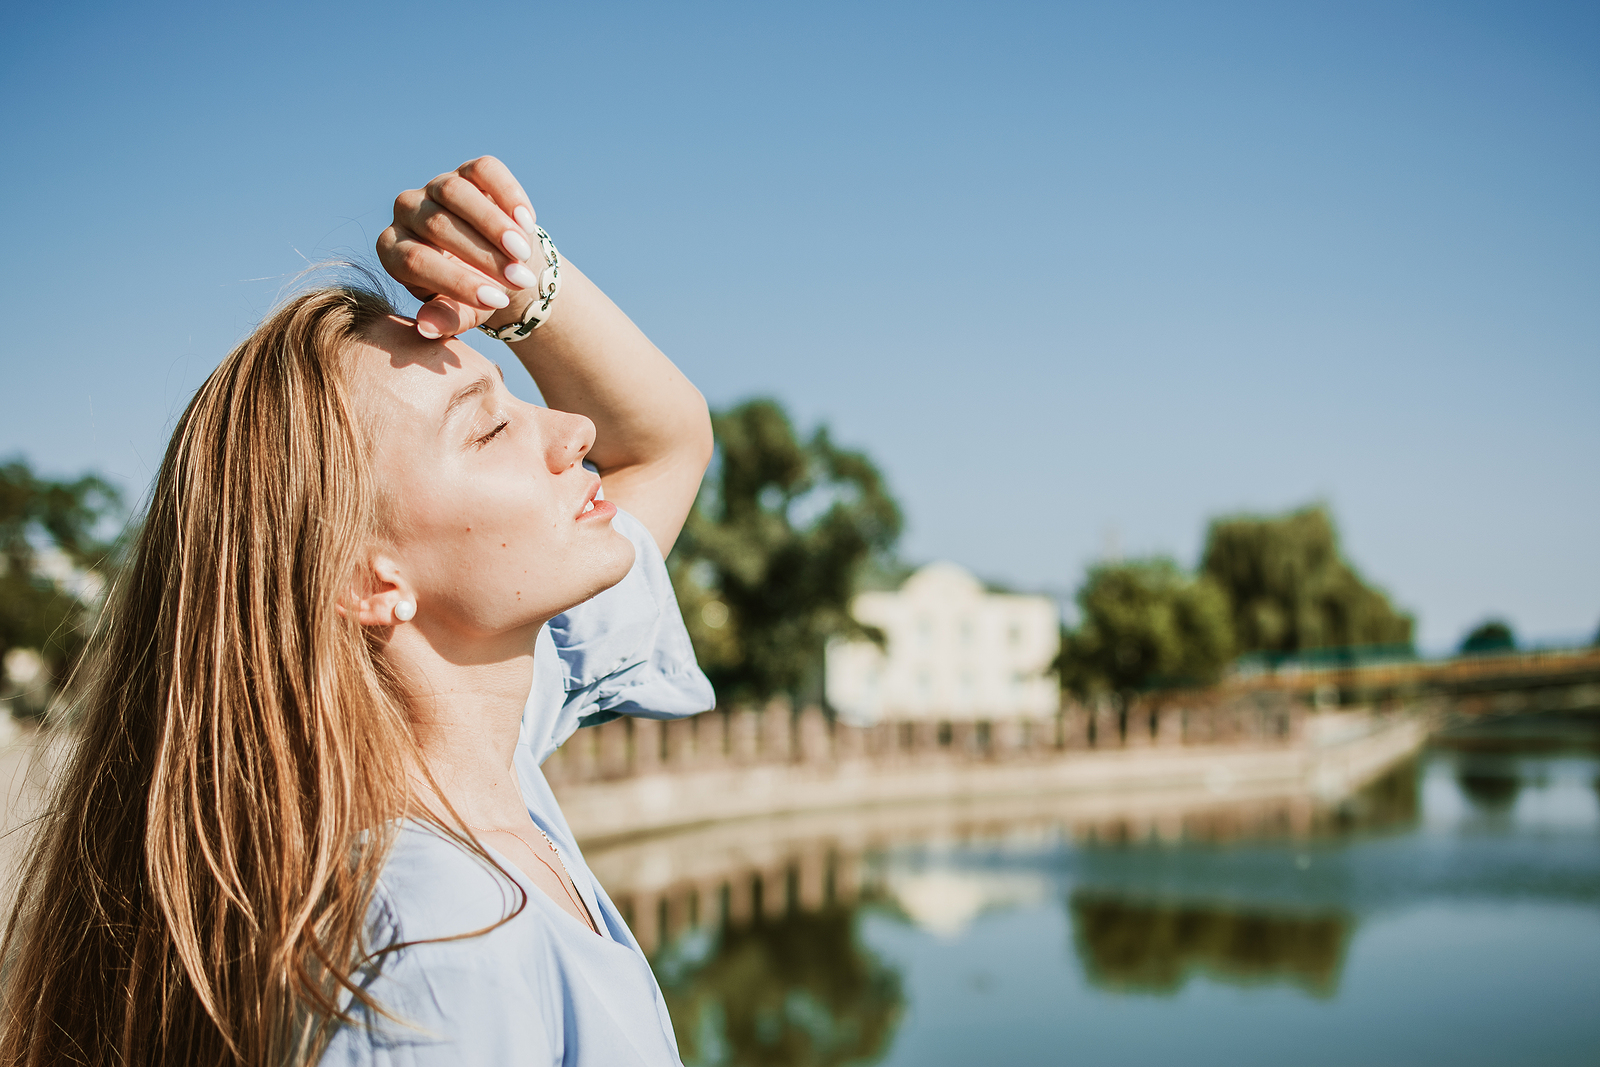 7 ways to stay cool this summer.